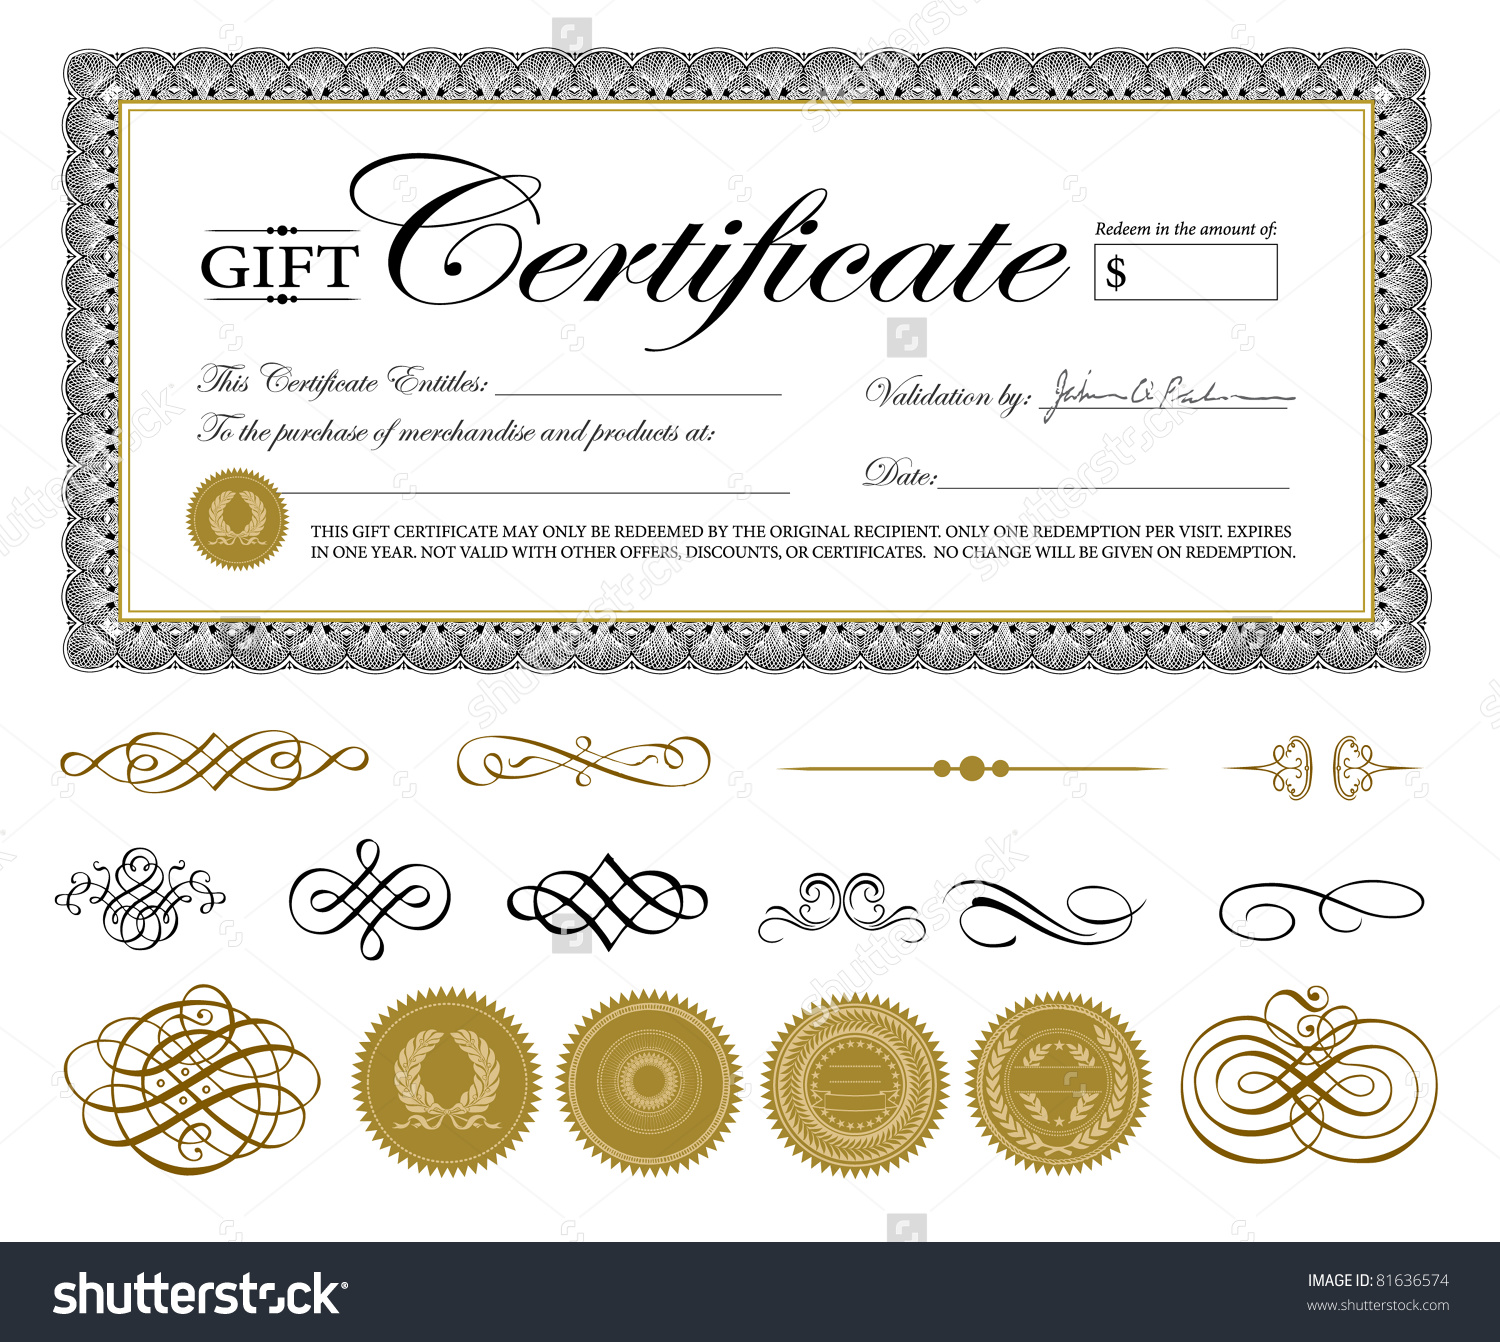 Gift certificate template rich image and for Certificate design template